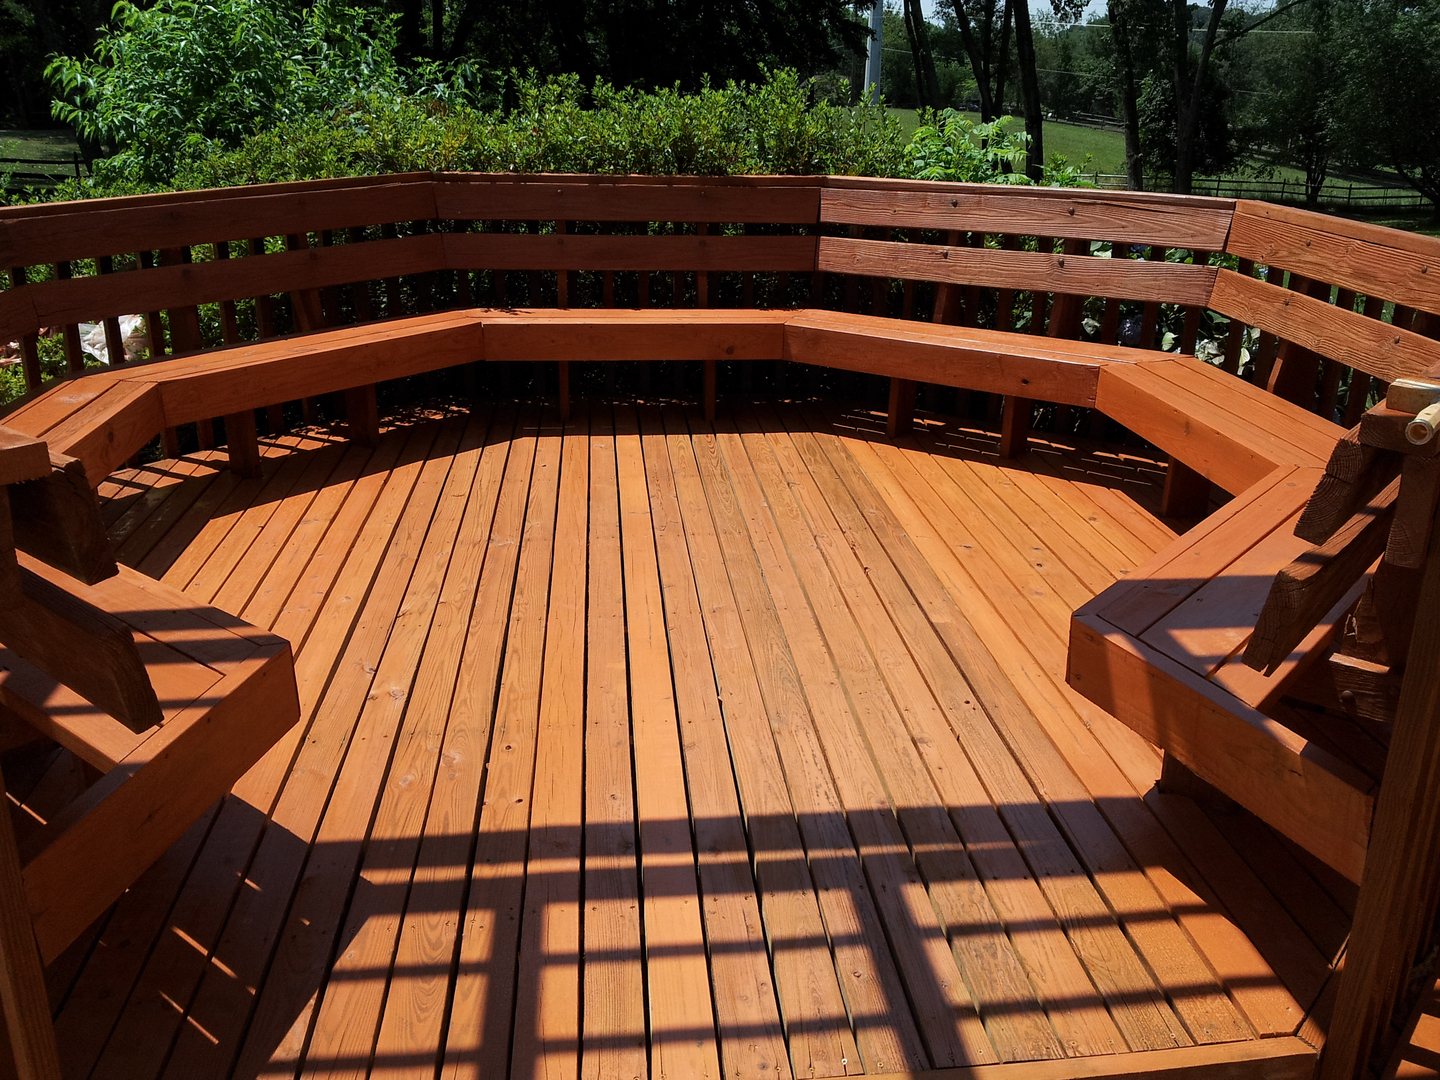 Power washing a deck - We Pressure Wash All Exposed Surfaces To Safely Remove Dead Wood Fibers Dirt And Mildew From Deck With A Safe Deck Cleaner Solution As Soon As The